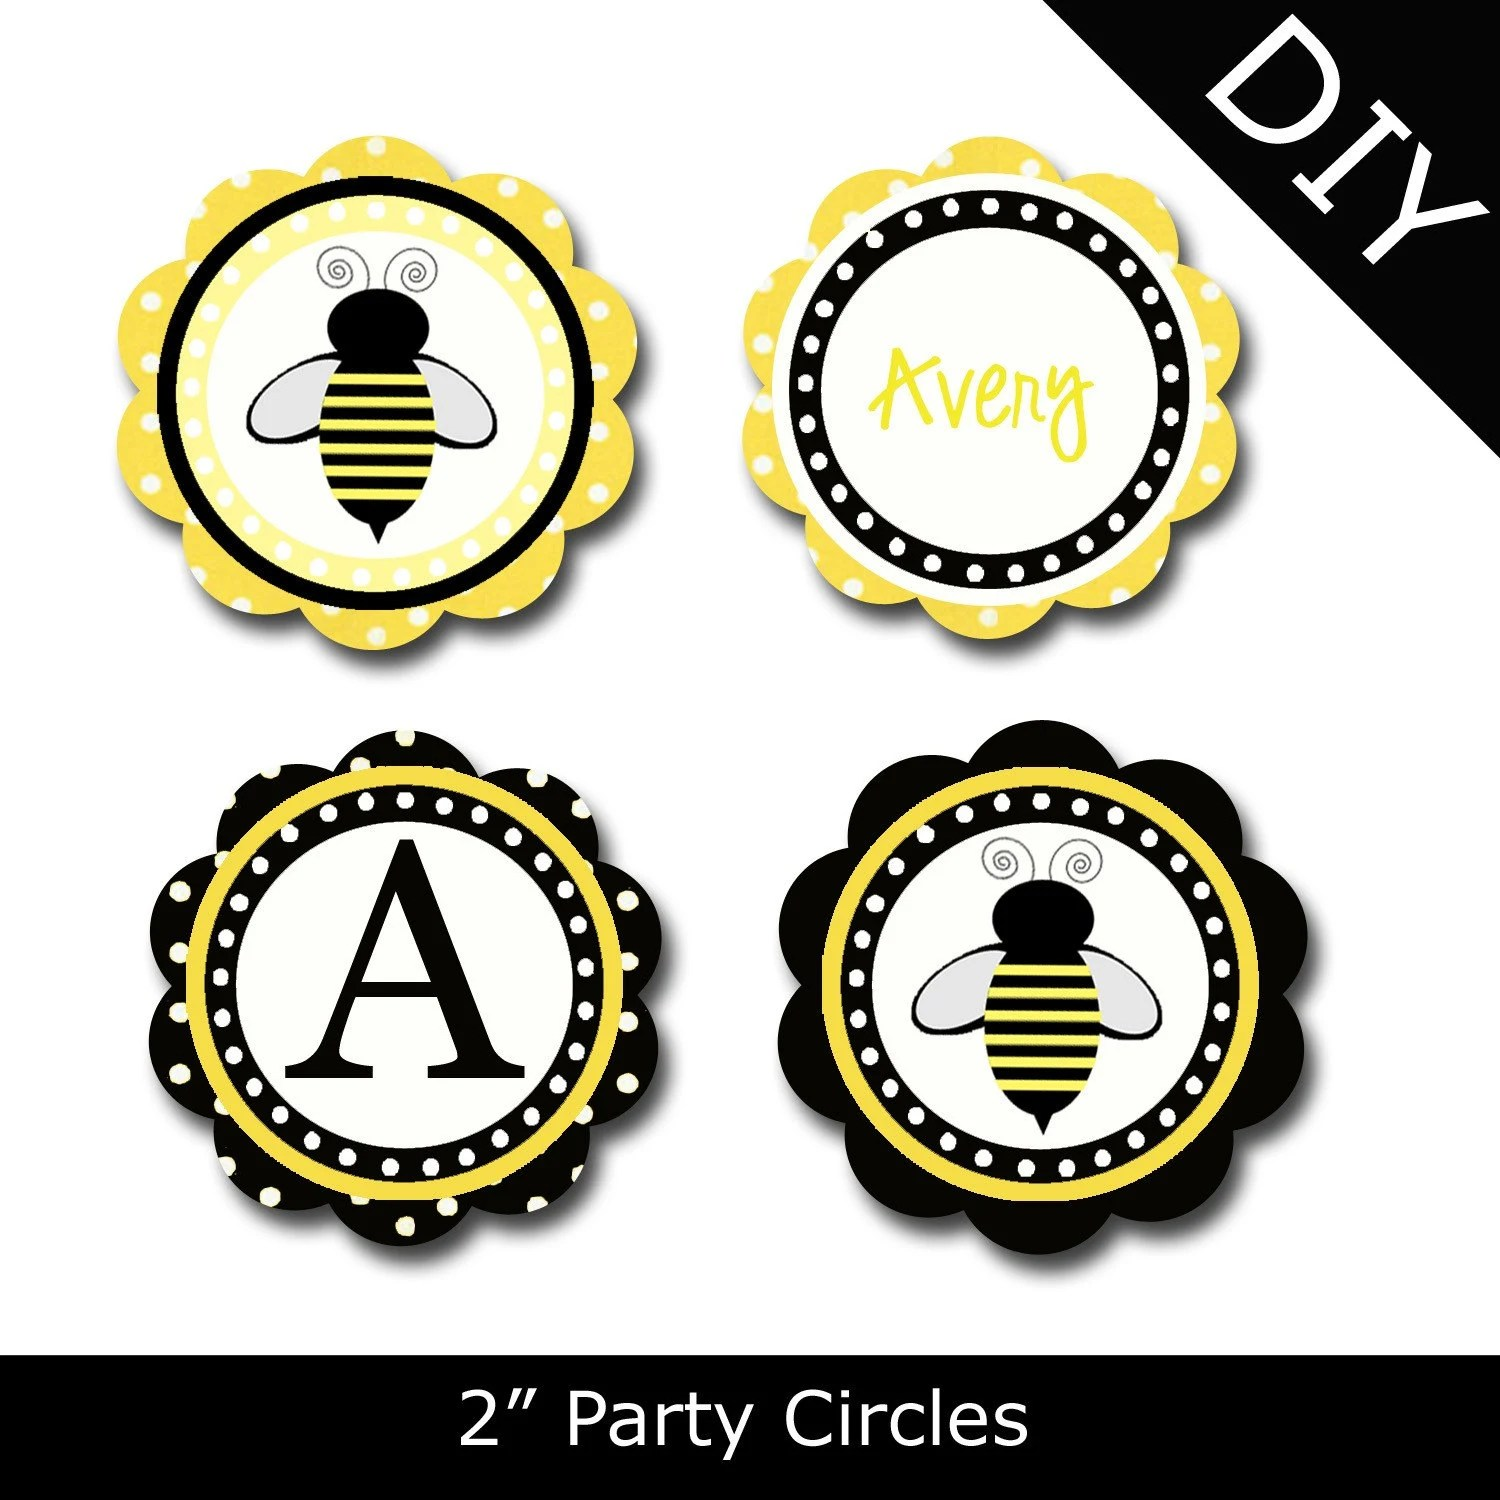 Items Similar To Bumble Bee Printable Party Circles By Oh My Gluestick On Etsy